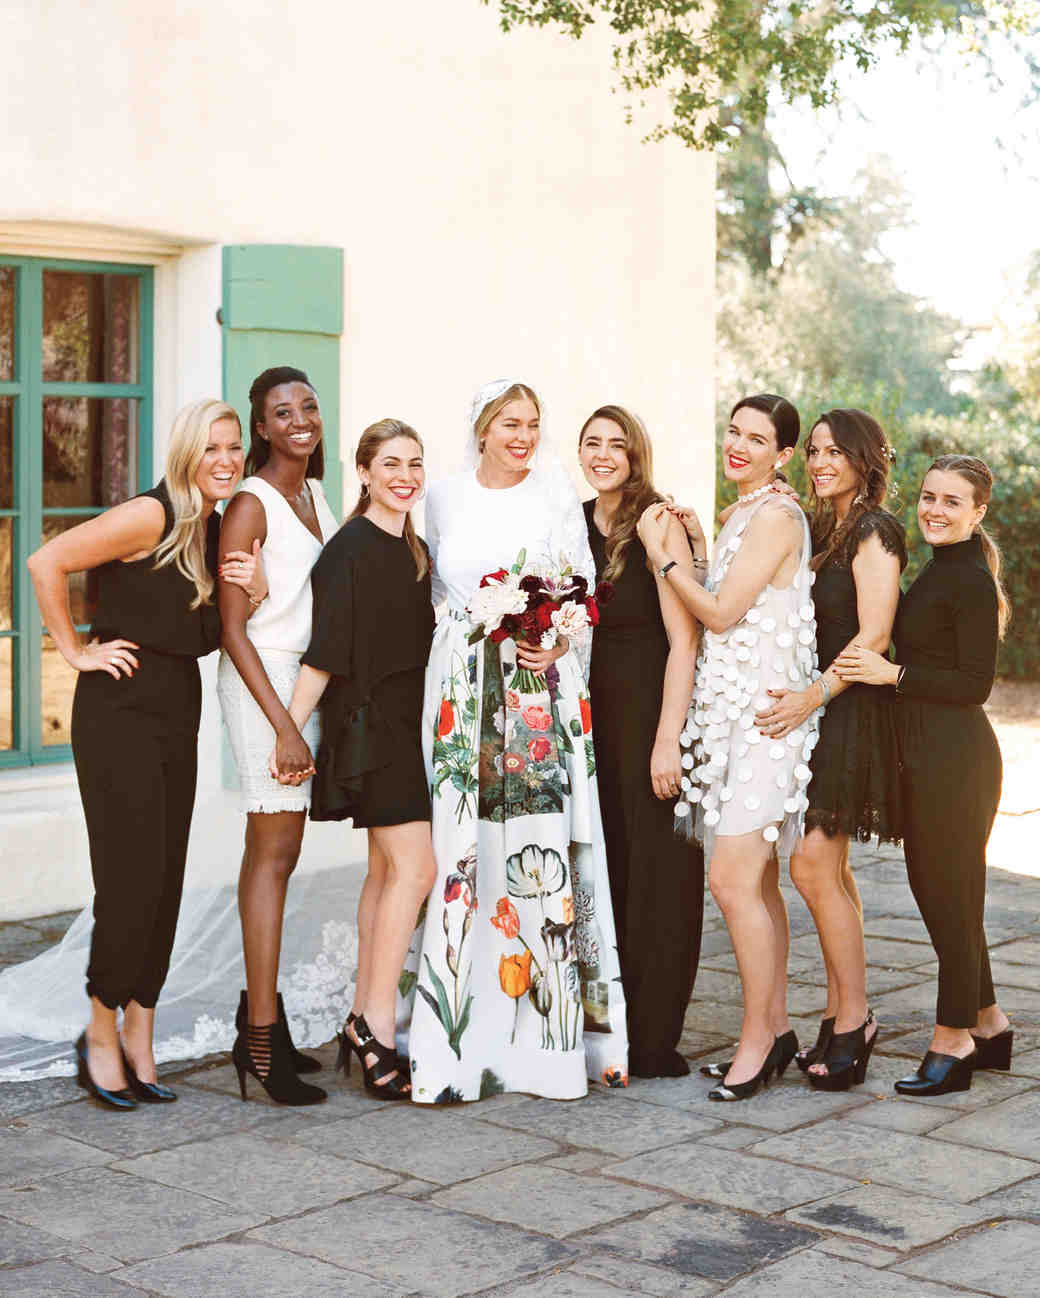 Black bridesmaid dresses different styles dress images black bridesmaid dresses different styles ombrellifo Images